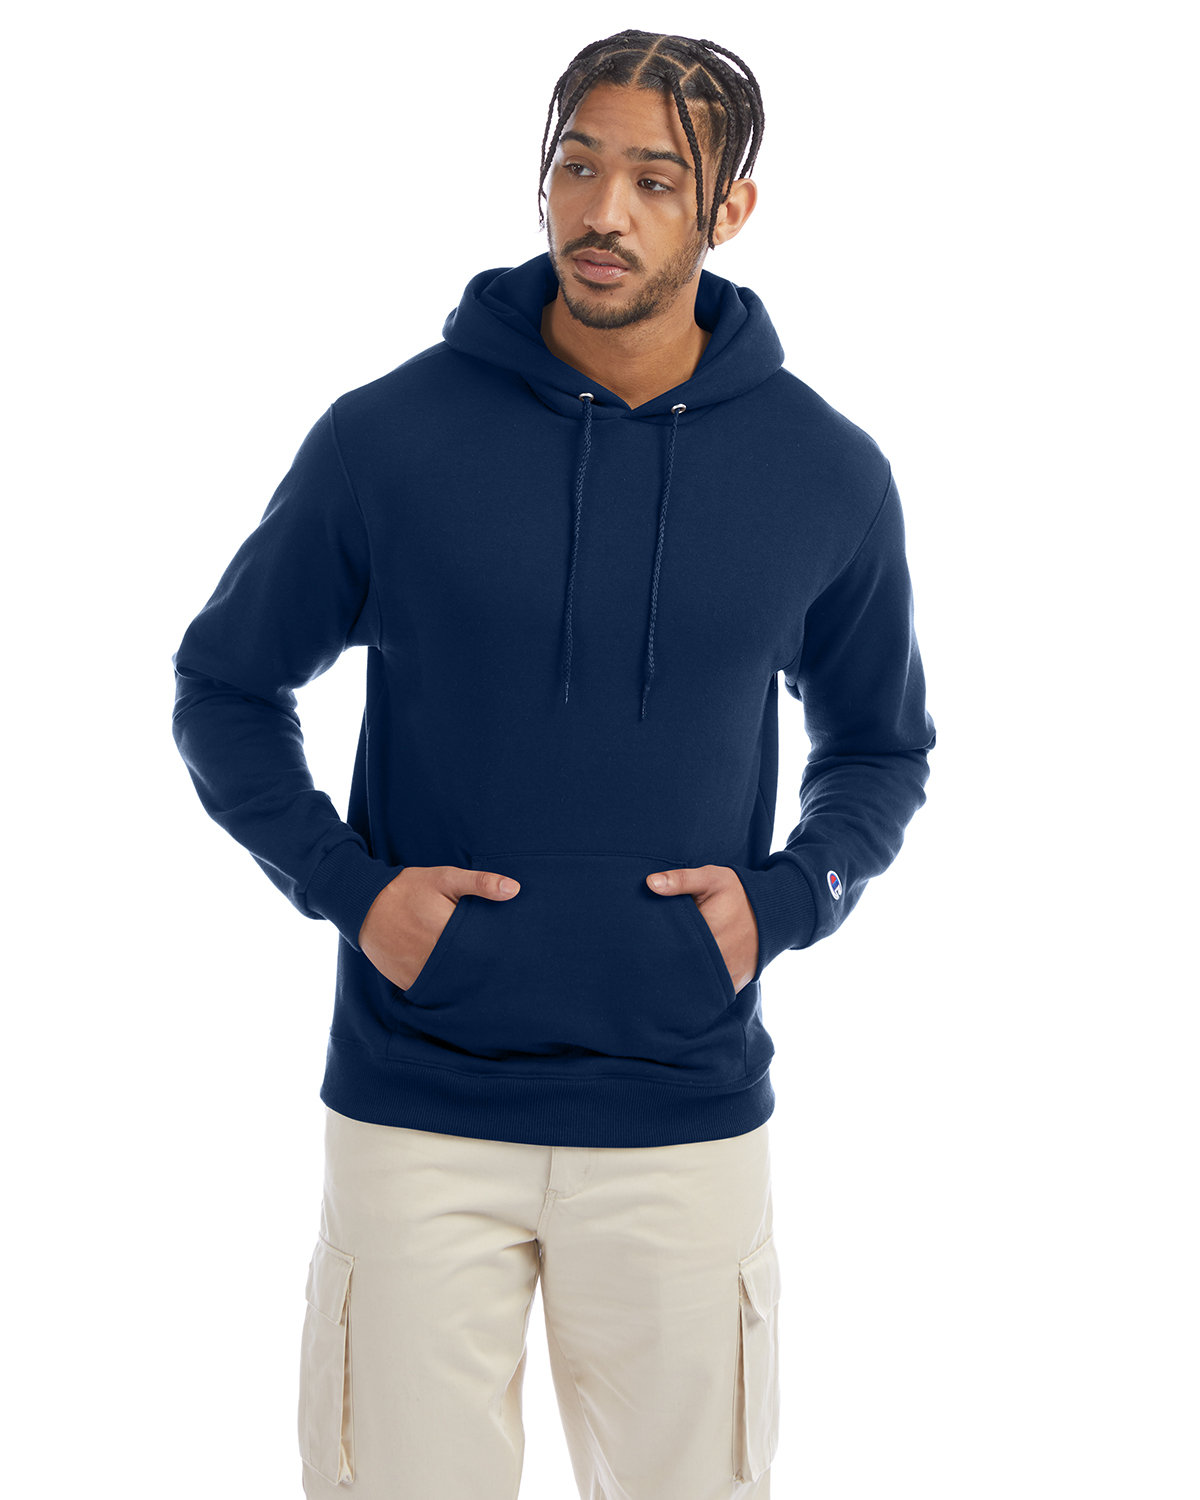 Champion Adult Double Dry Eco® Pullover Hooded Sweatshirt LATE NIGHT BLUE